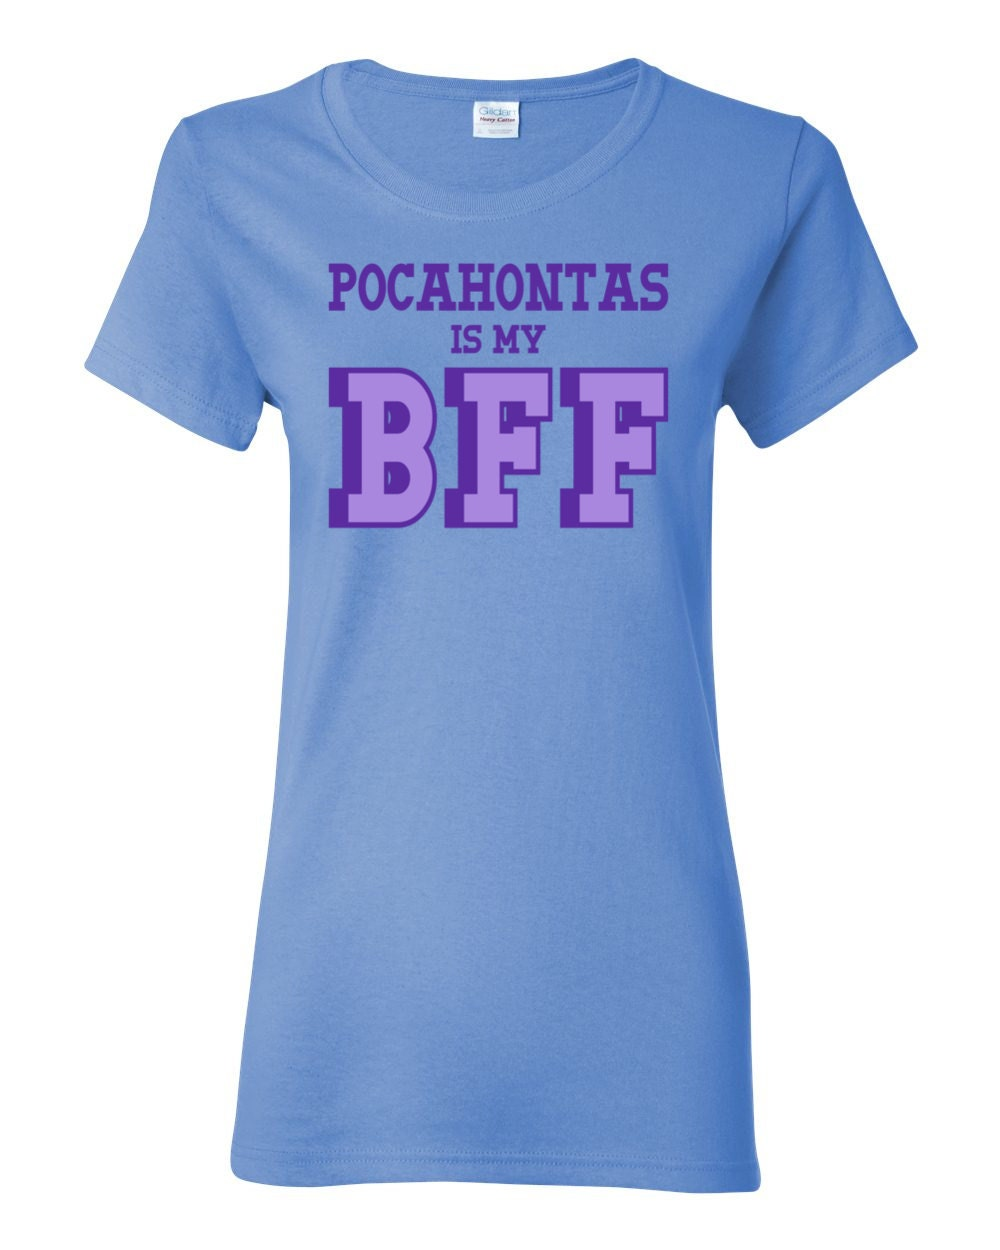 Great Women of History - Pocahontas is my BFF Womens History T-shirt